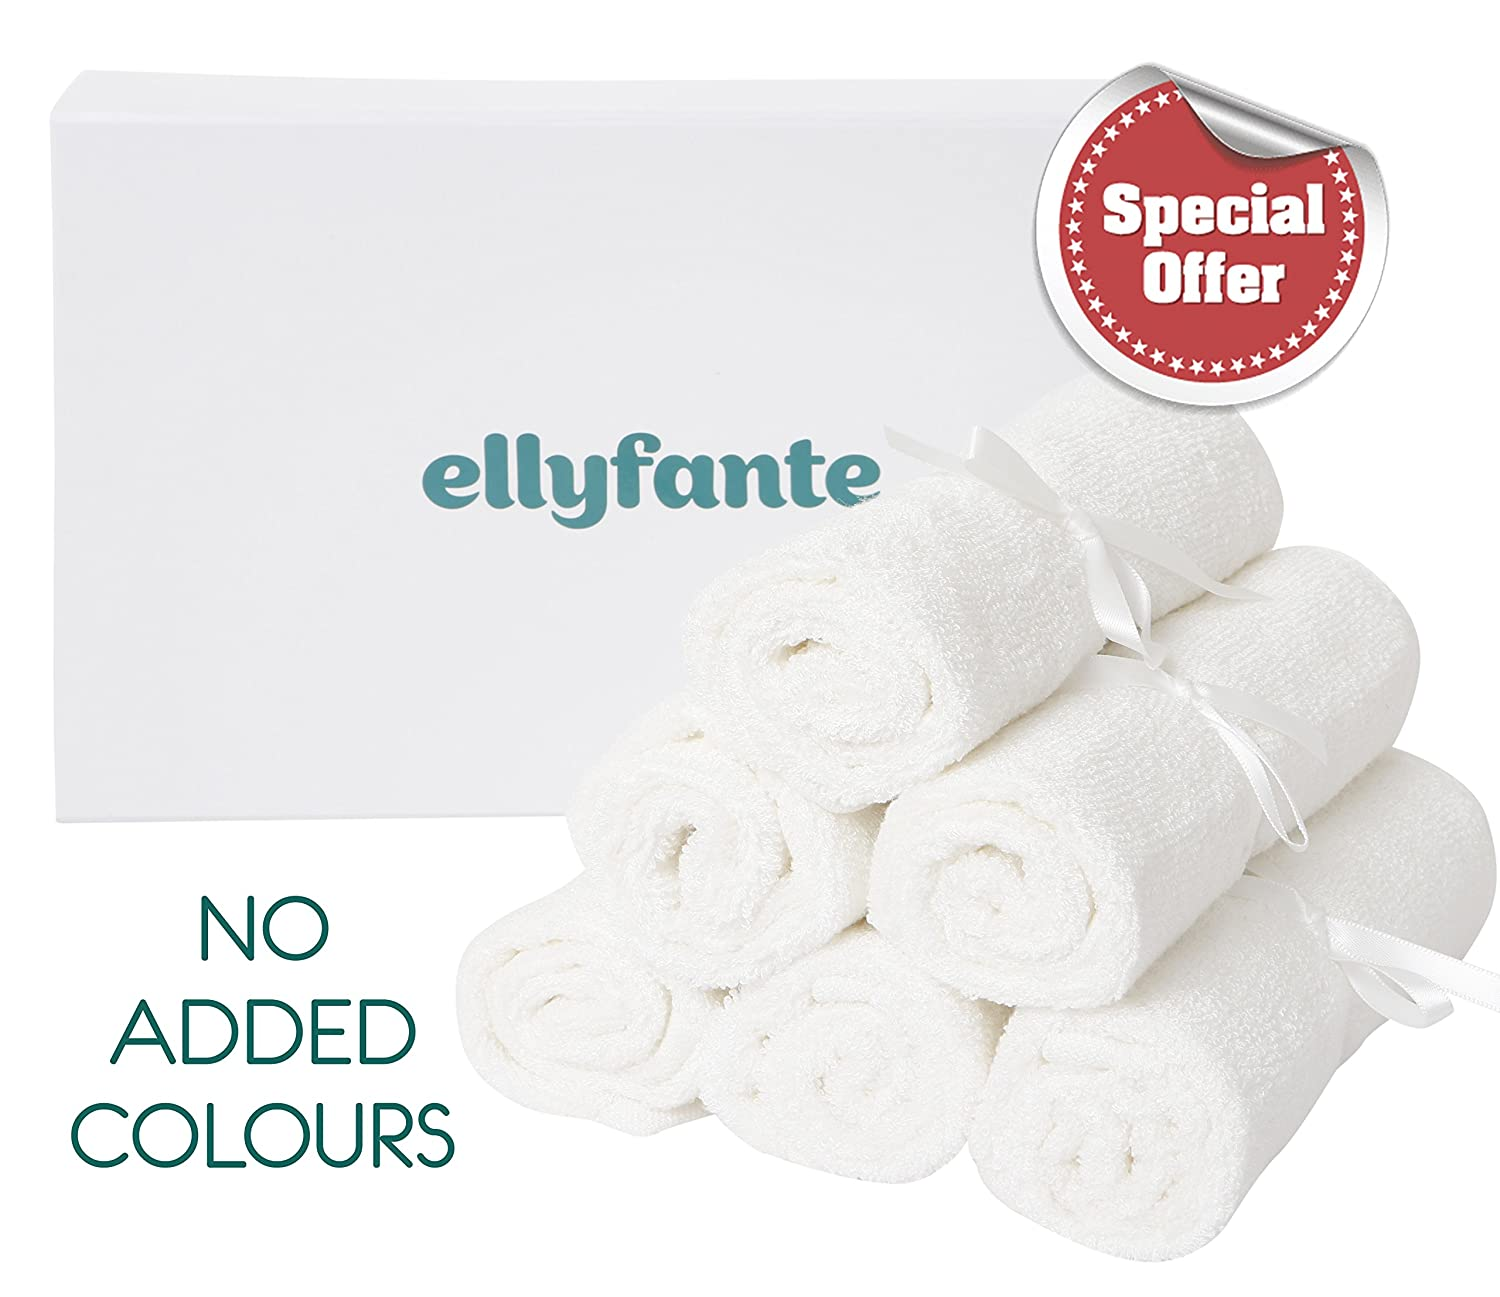 Ellyfante Premium Bamboo Baby Washcloths Gift Set | Pack of 6 Organic Bamboo Baby Washcloth Flannels | Generously large sized at 13 x 12 inches (34cm x 30cm) | Perfect New Baby Gift for Parents | Super Soft, Smooth on skin, Organic and Eco-Friendly Face W